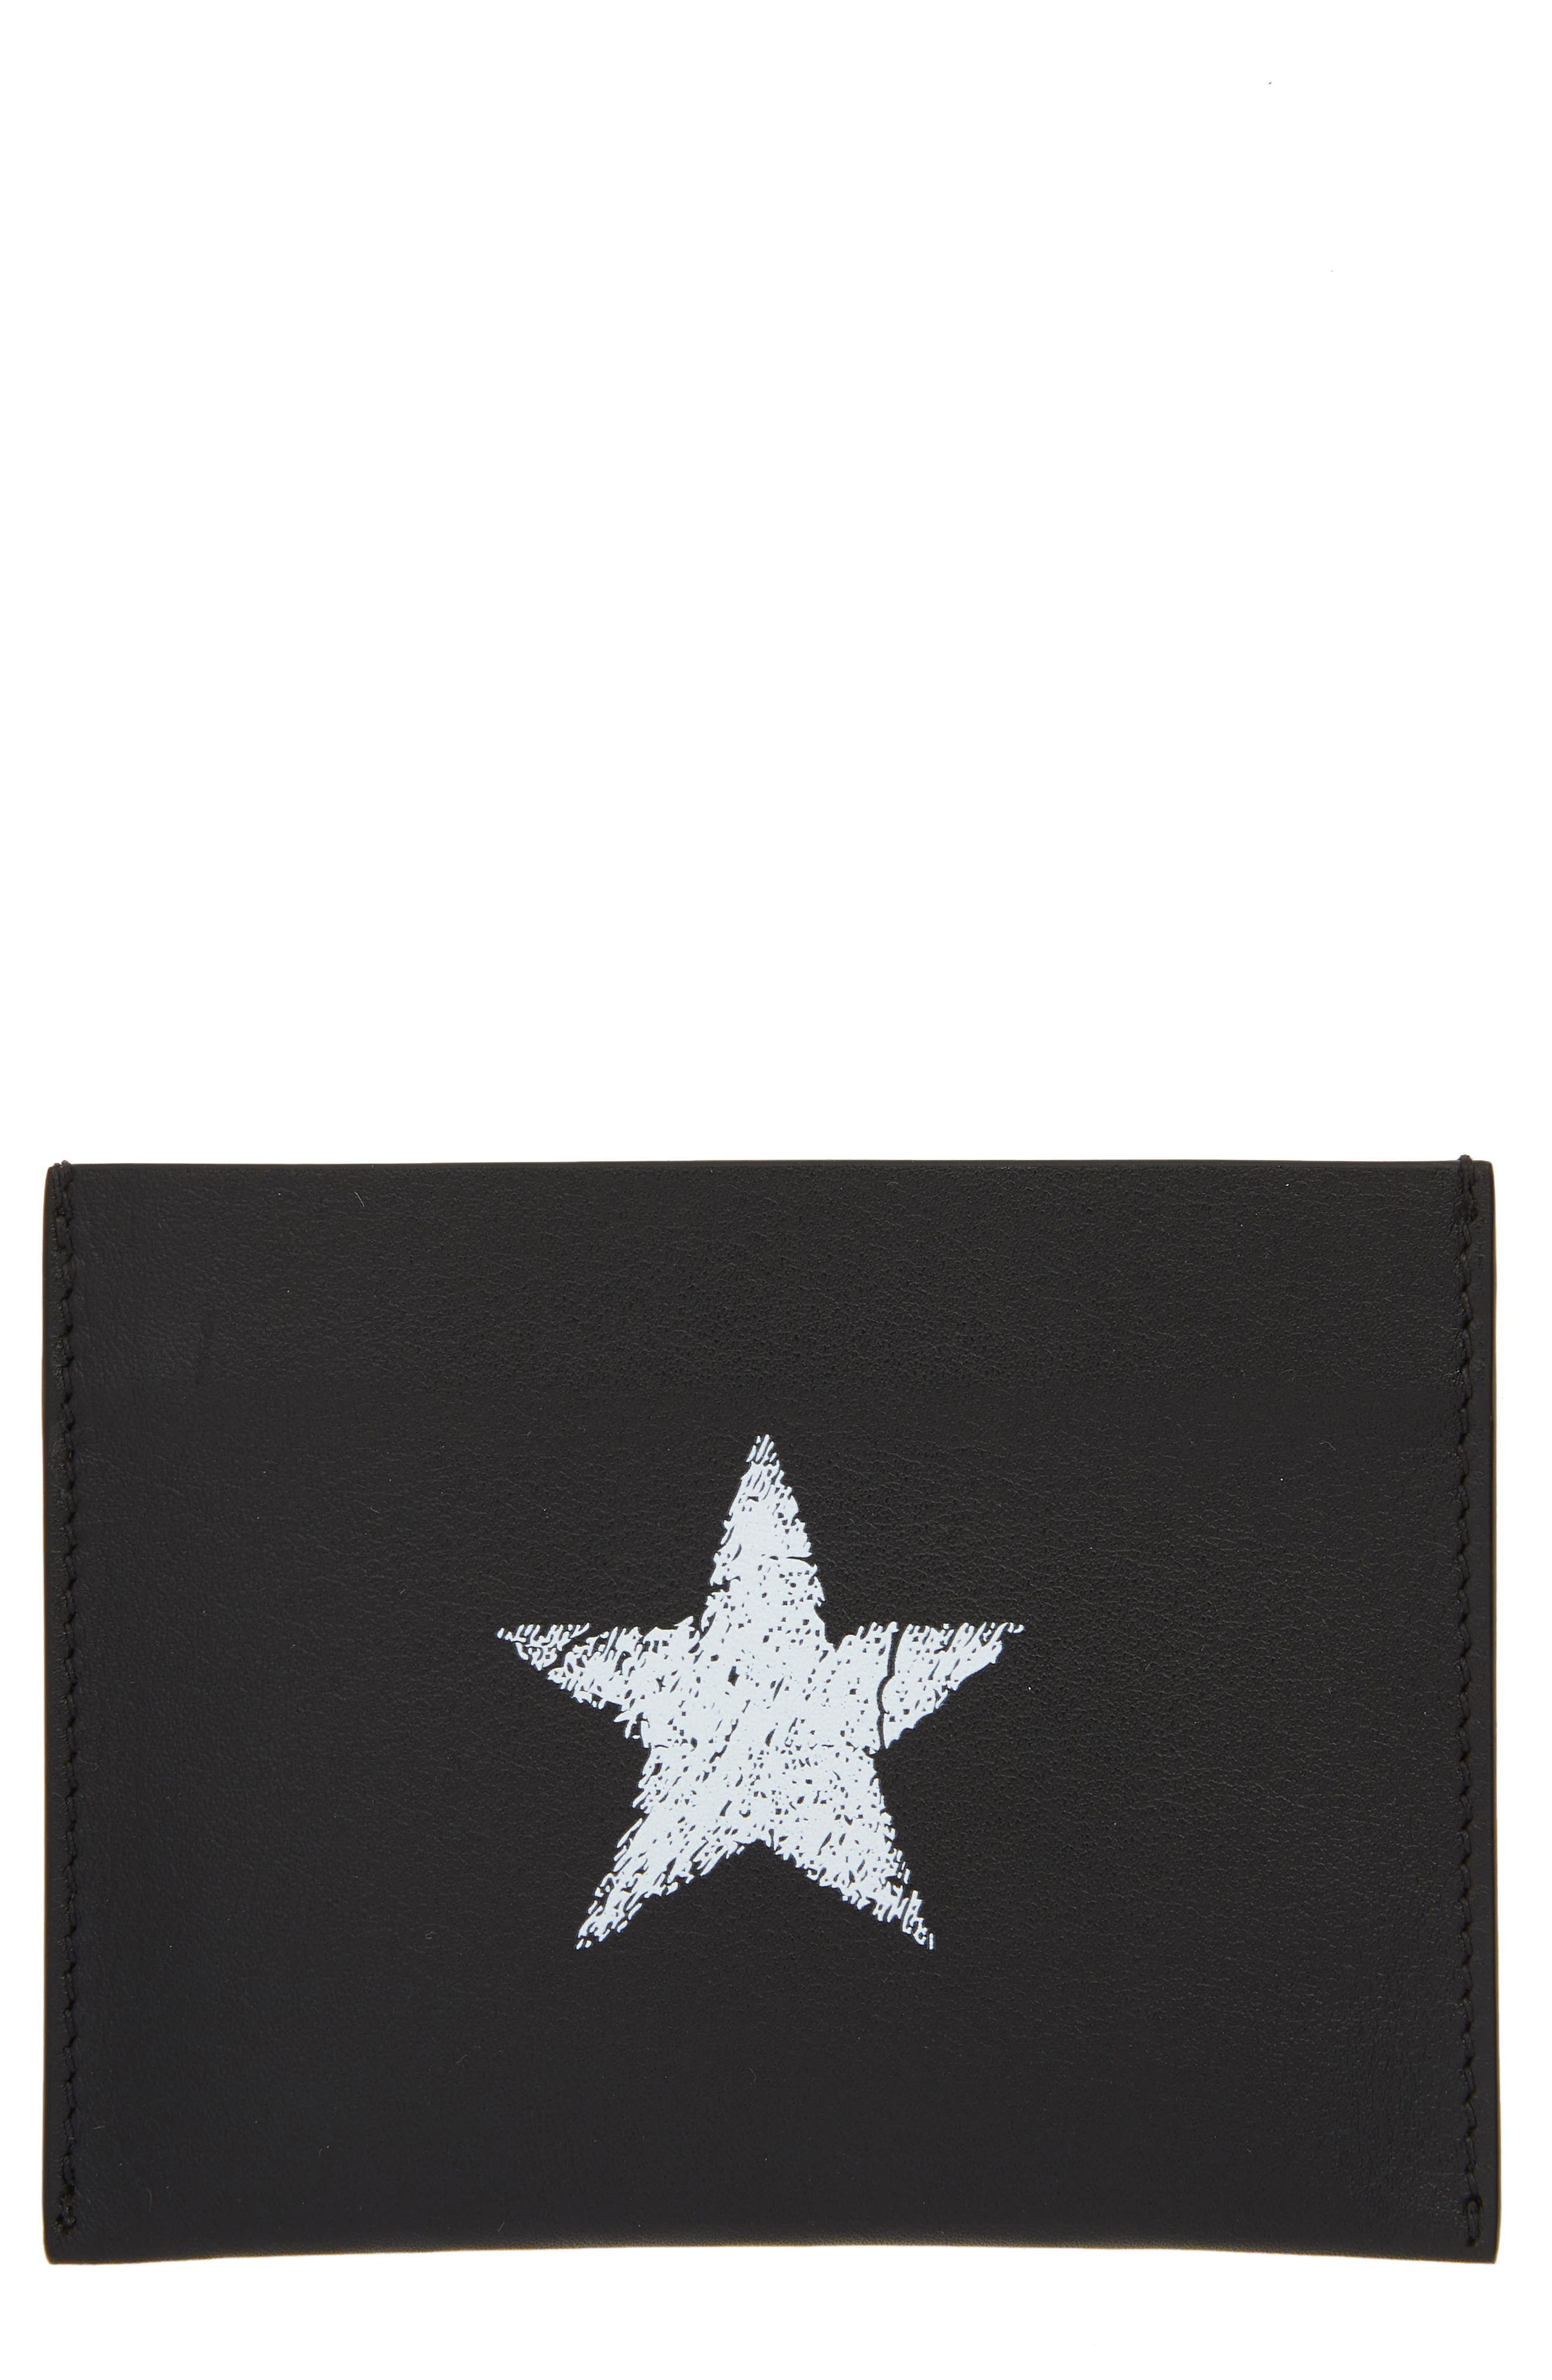 Blurred Star Leather Card Holder,                             Main thumbnail 1, color,                             BLACK